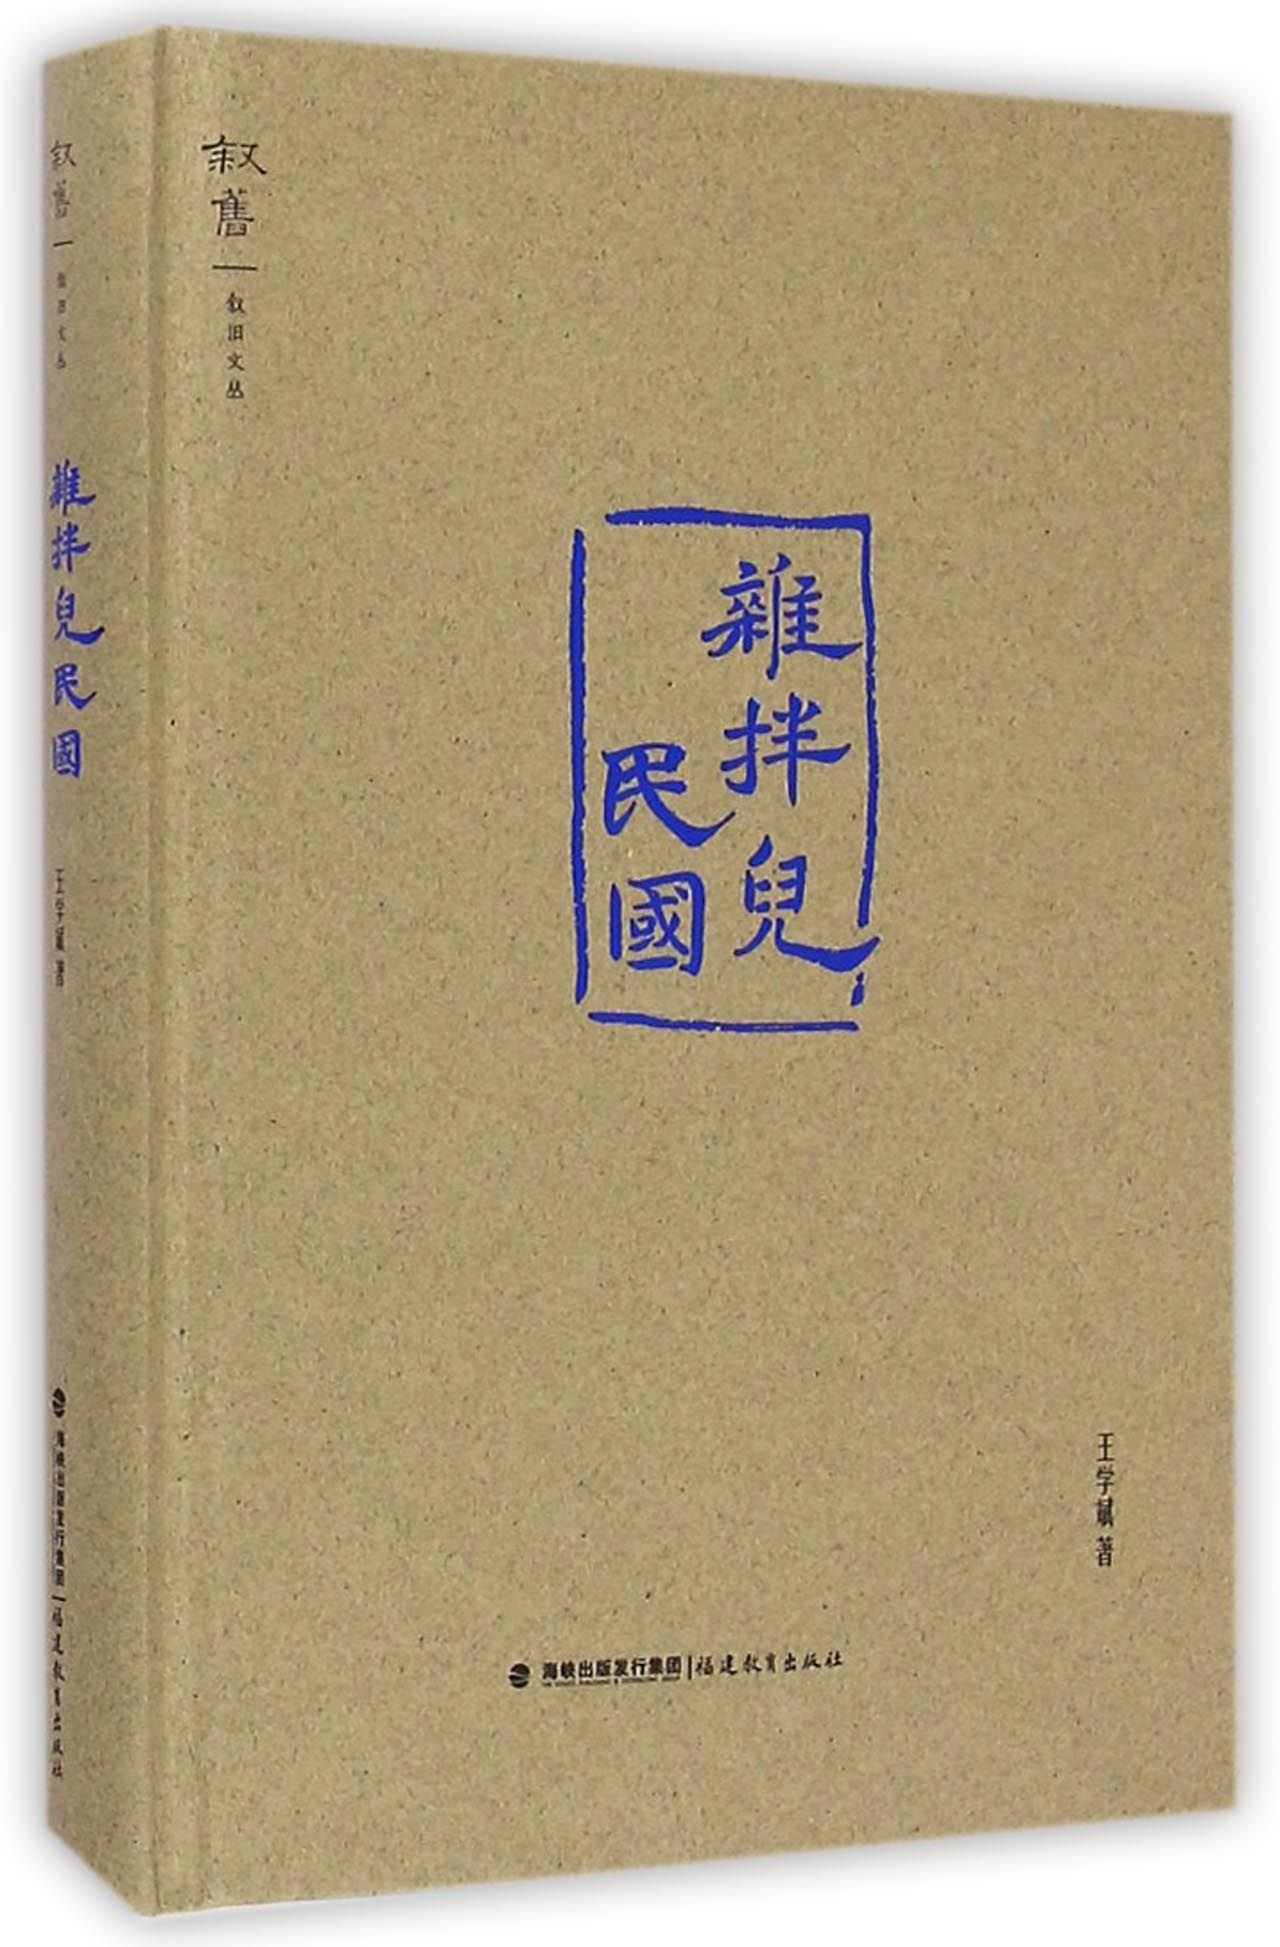 All About the Republic of China (Hardback Edition) (Catch-up Collection) (Chinese Edition) ebook